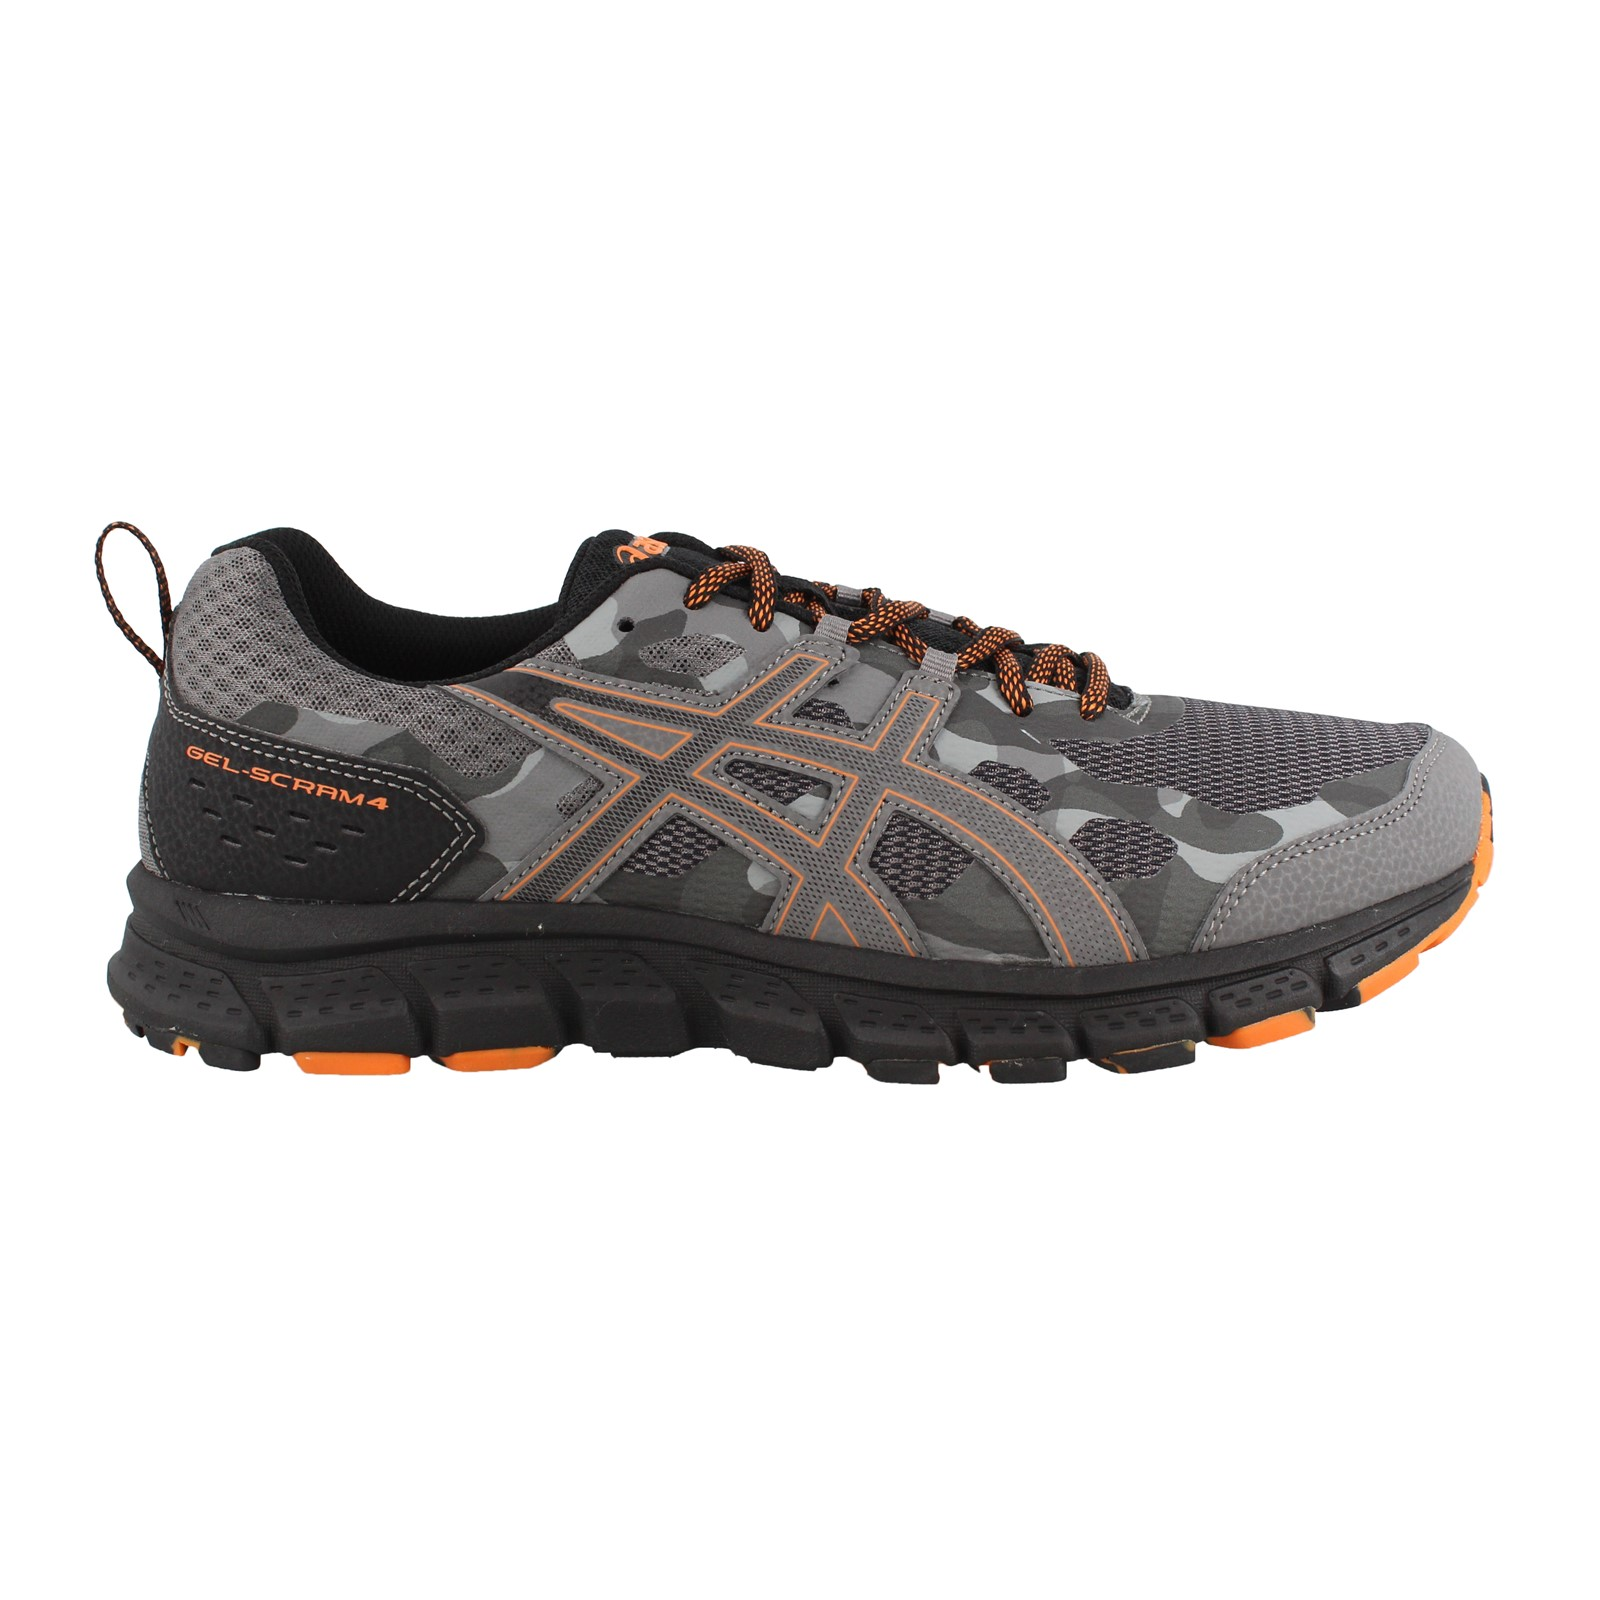 Men's Asics, Gel Scram 4 Trail Running Sneakers 4E Width